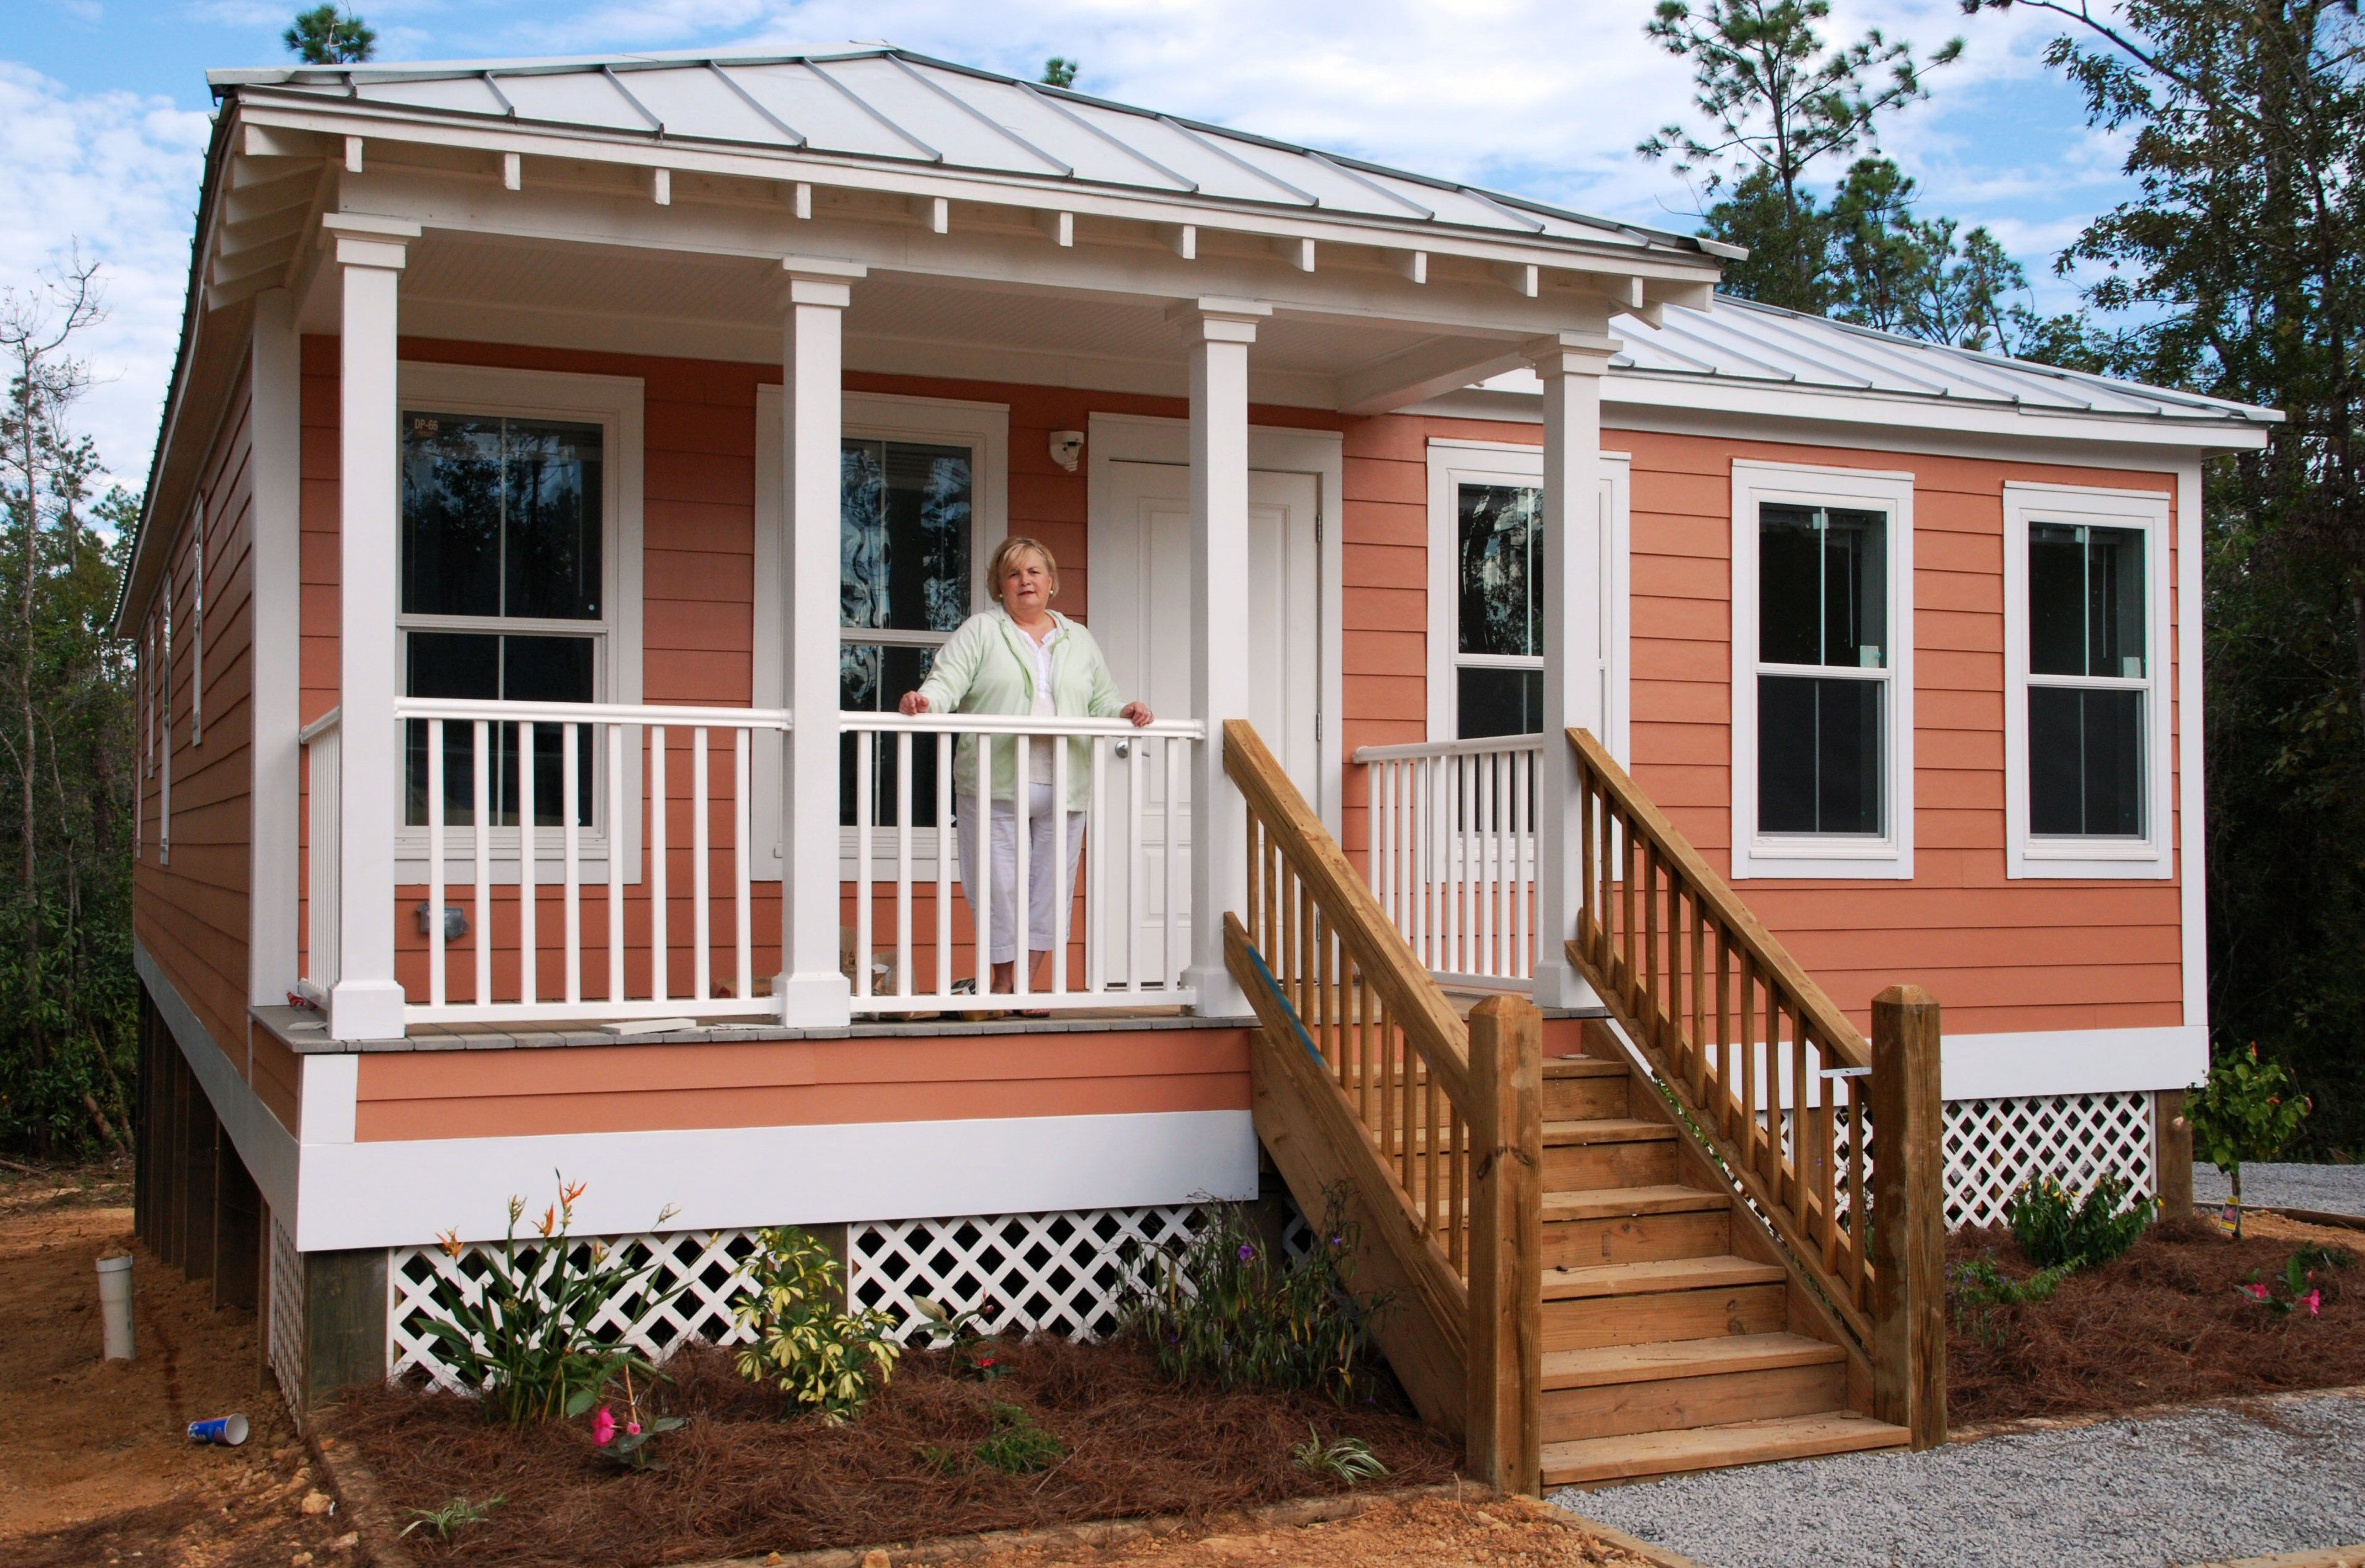 katrina curb cottage of prefab pin search pinterest modularhomeowners com type modular and best kits hundreds house prefabs homes under alternative